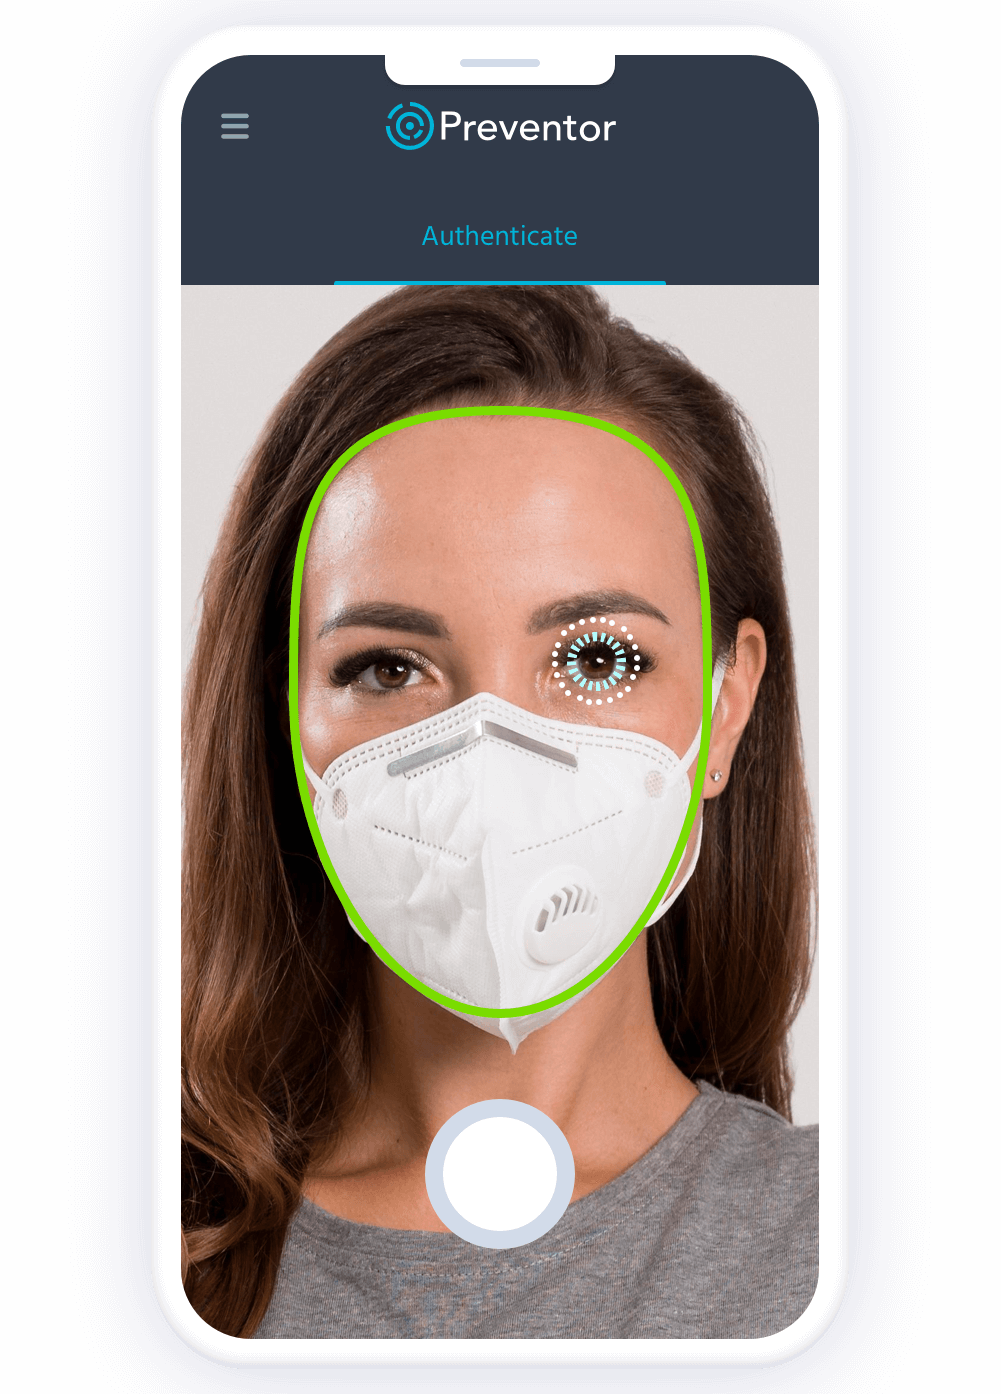 Face recognition and Periocular authentication.